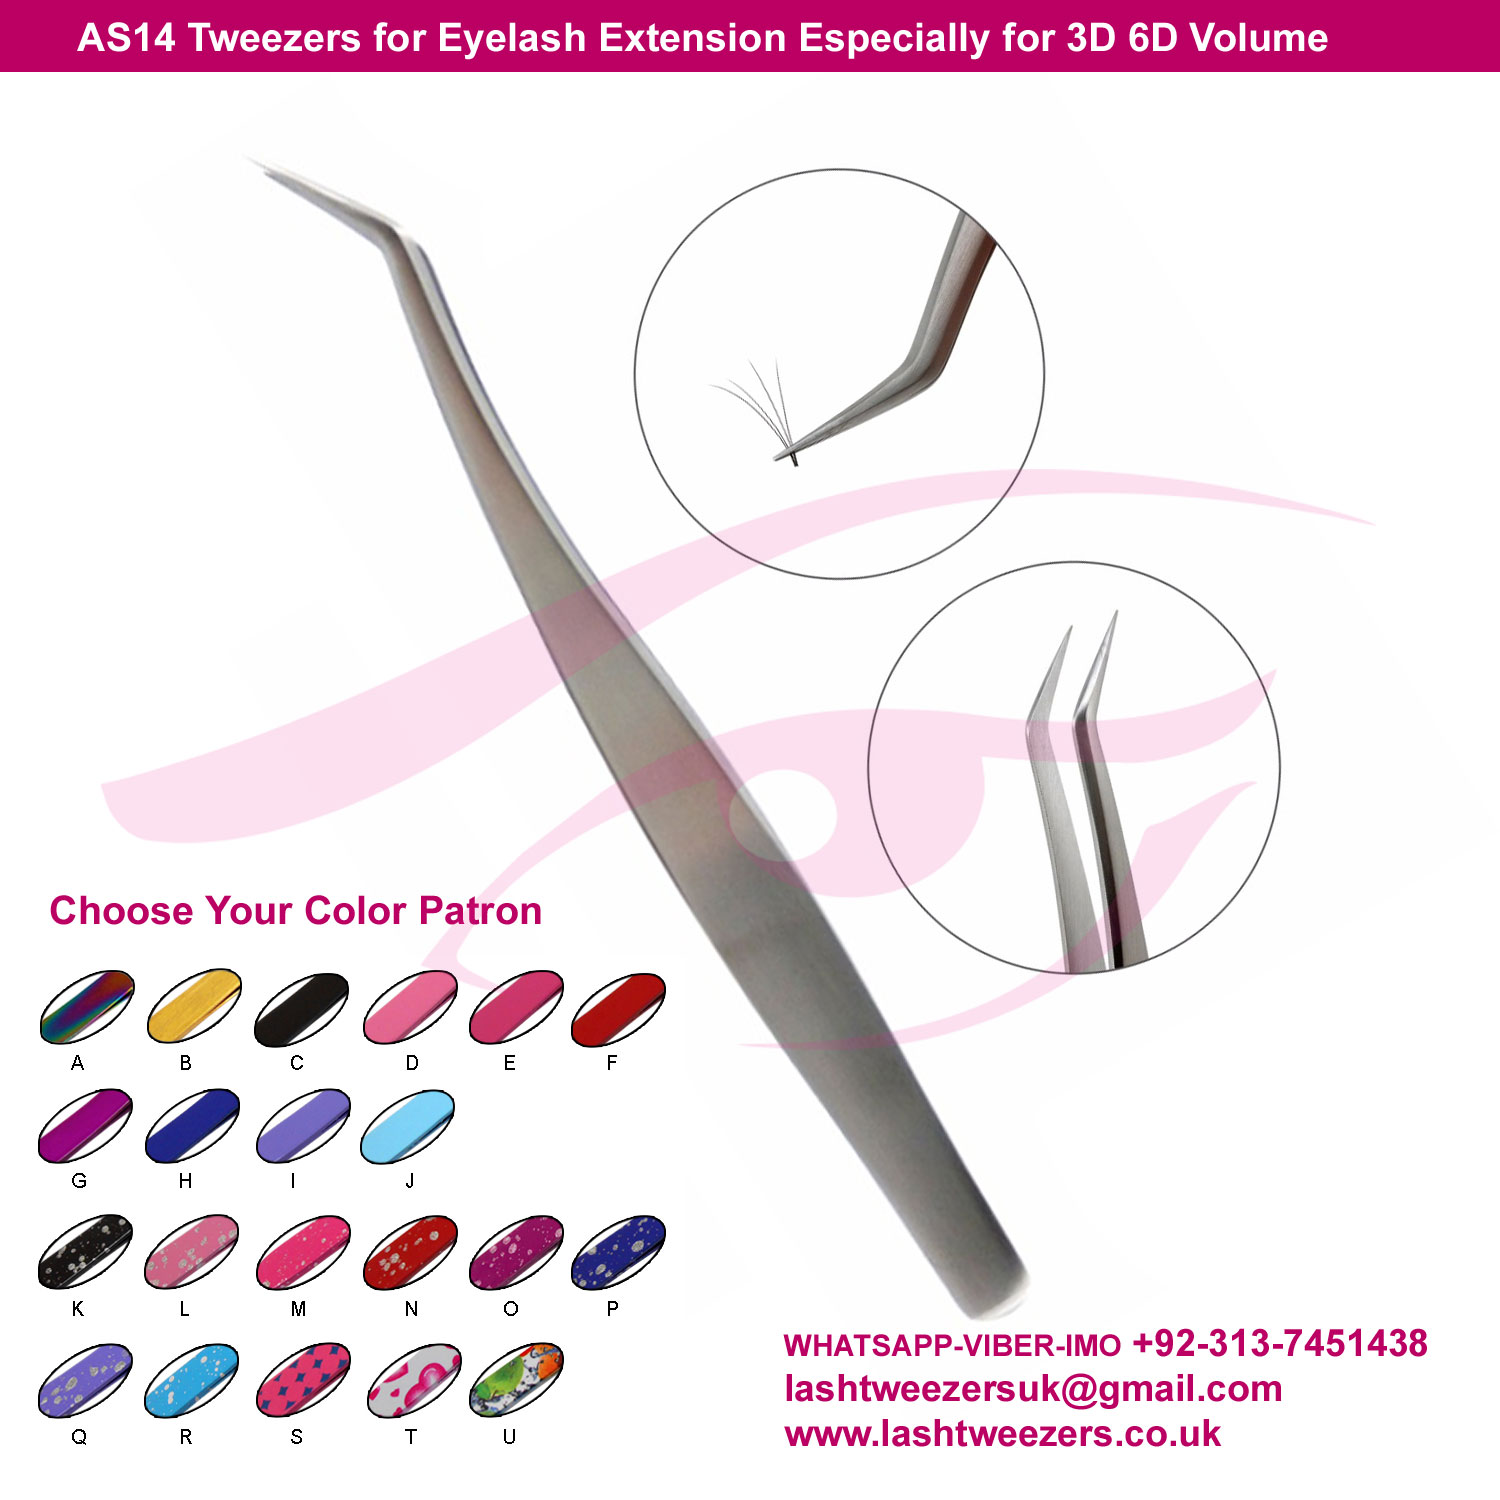 AS14-Tweezers-for-Eyelash-Extension-Especially-for-3D-6D-Volume-Mink-Eyelash-extension-Make-up-Tools-produce-by-LASH-TWEEZERS